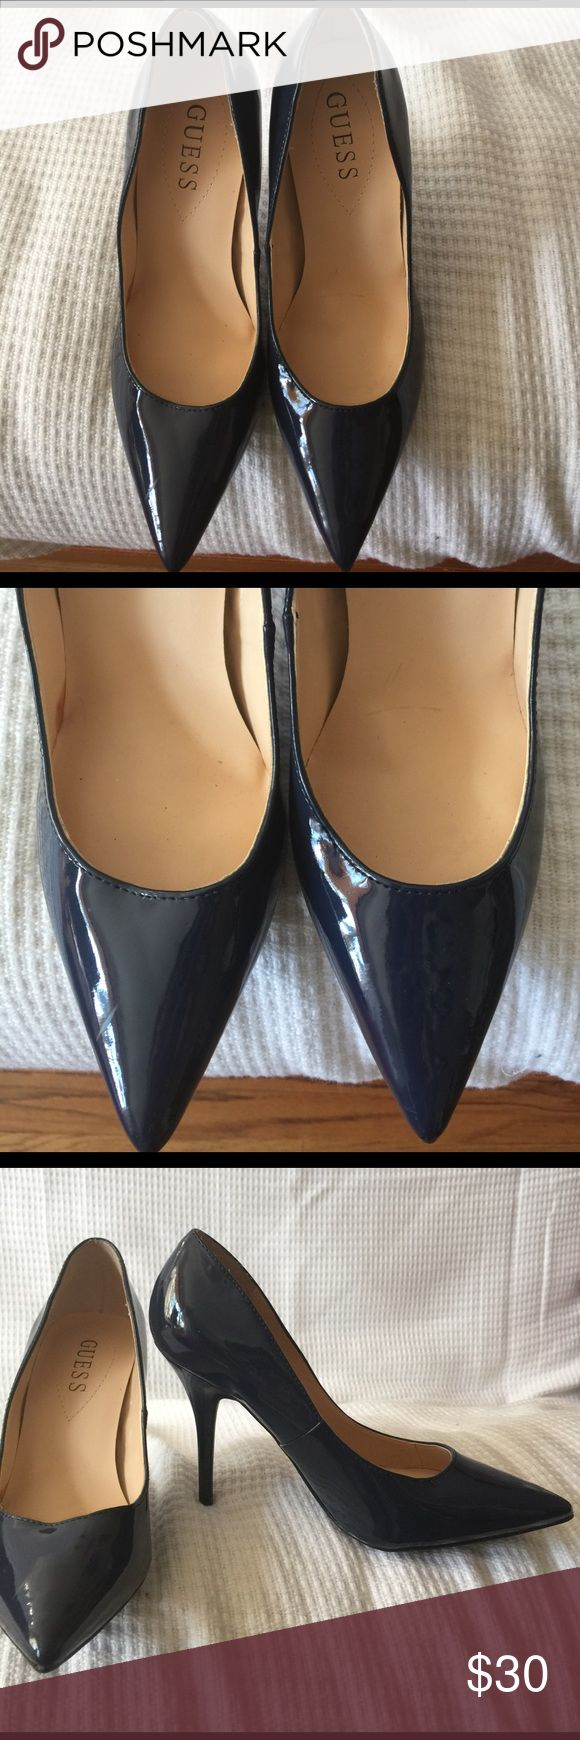 """GUESS Shoe Beautiful chic patent leather navy blue 4 """" heel... only used once for photo shoot 7 M Guess Shoes Heels"""